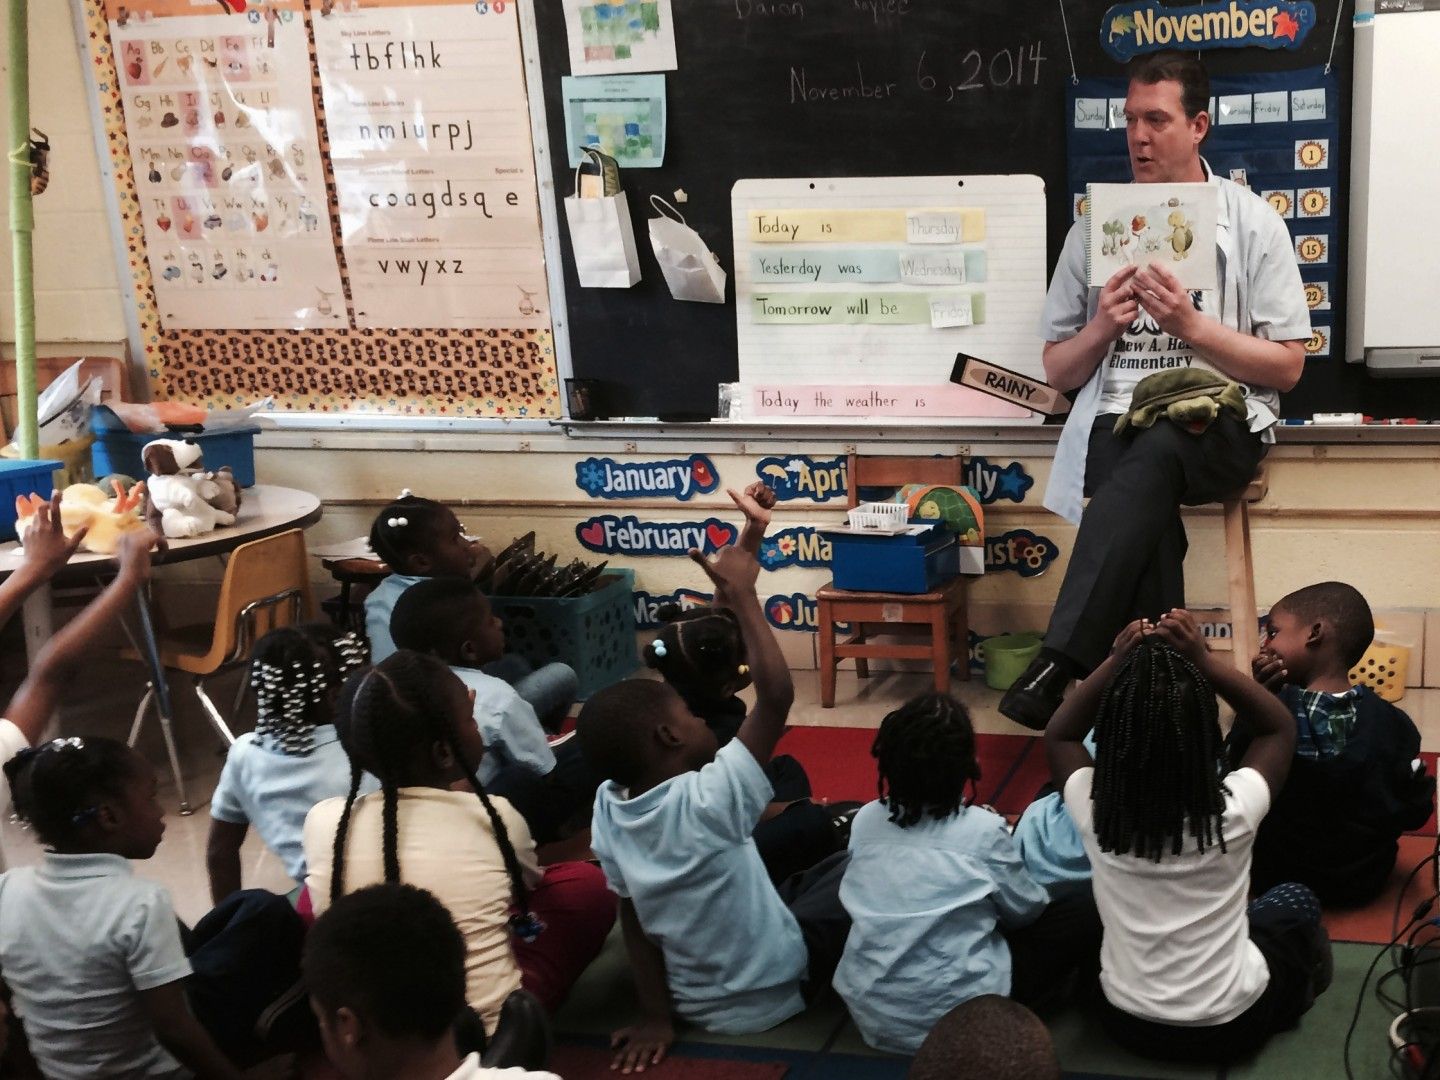 Thomas O'Donnell reads about Twiggle the Turtle to his kindergartners at Matthew Henson Elementary School in Baltimore. (Elissa Nadworny/NPR)